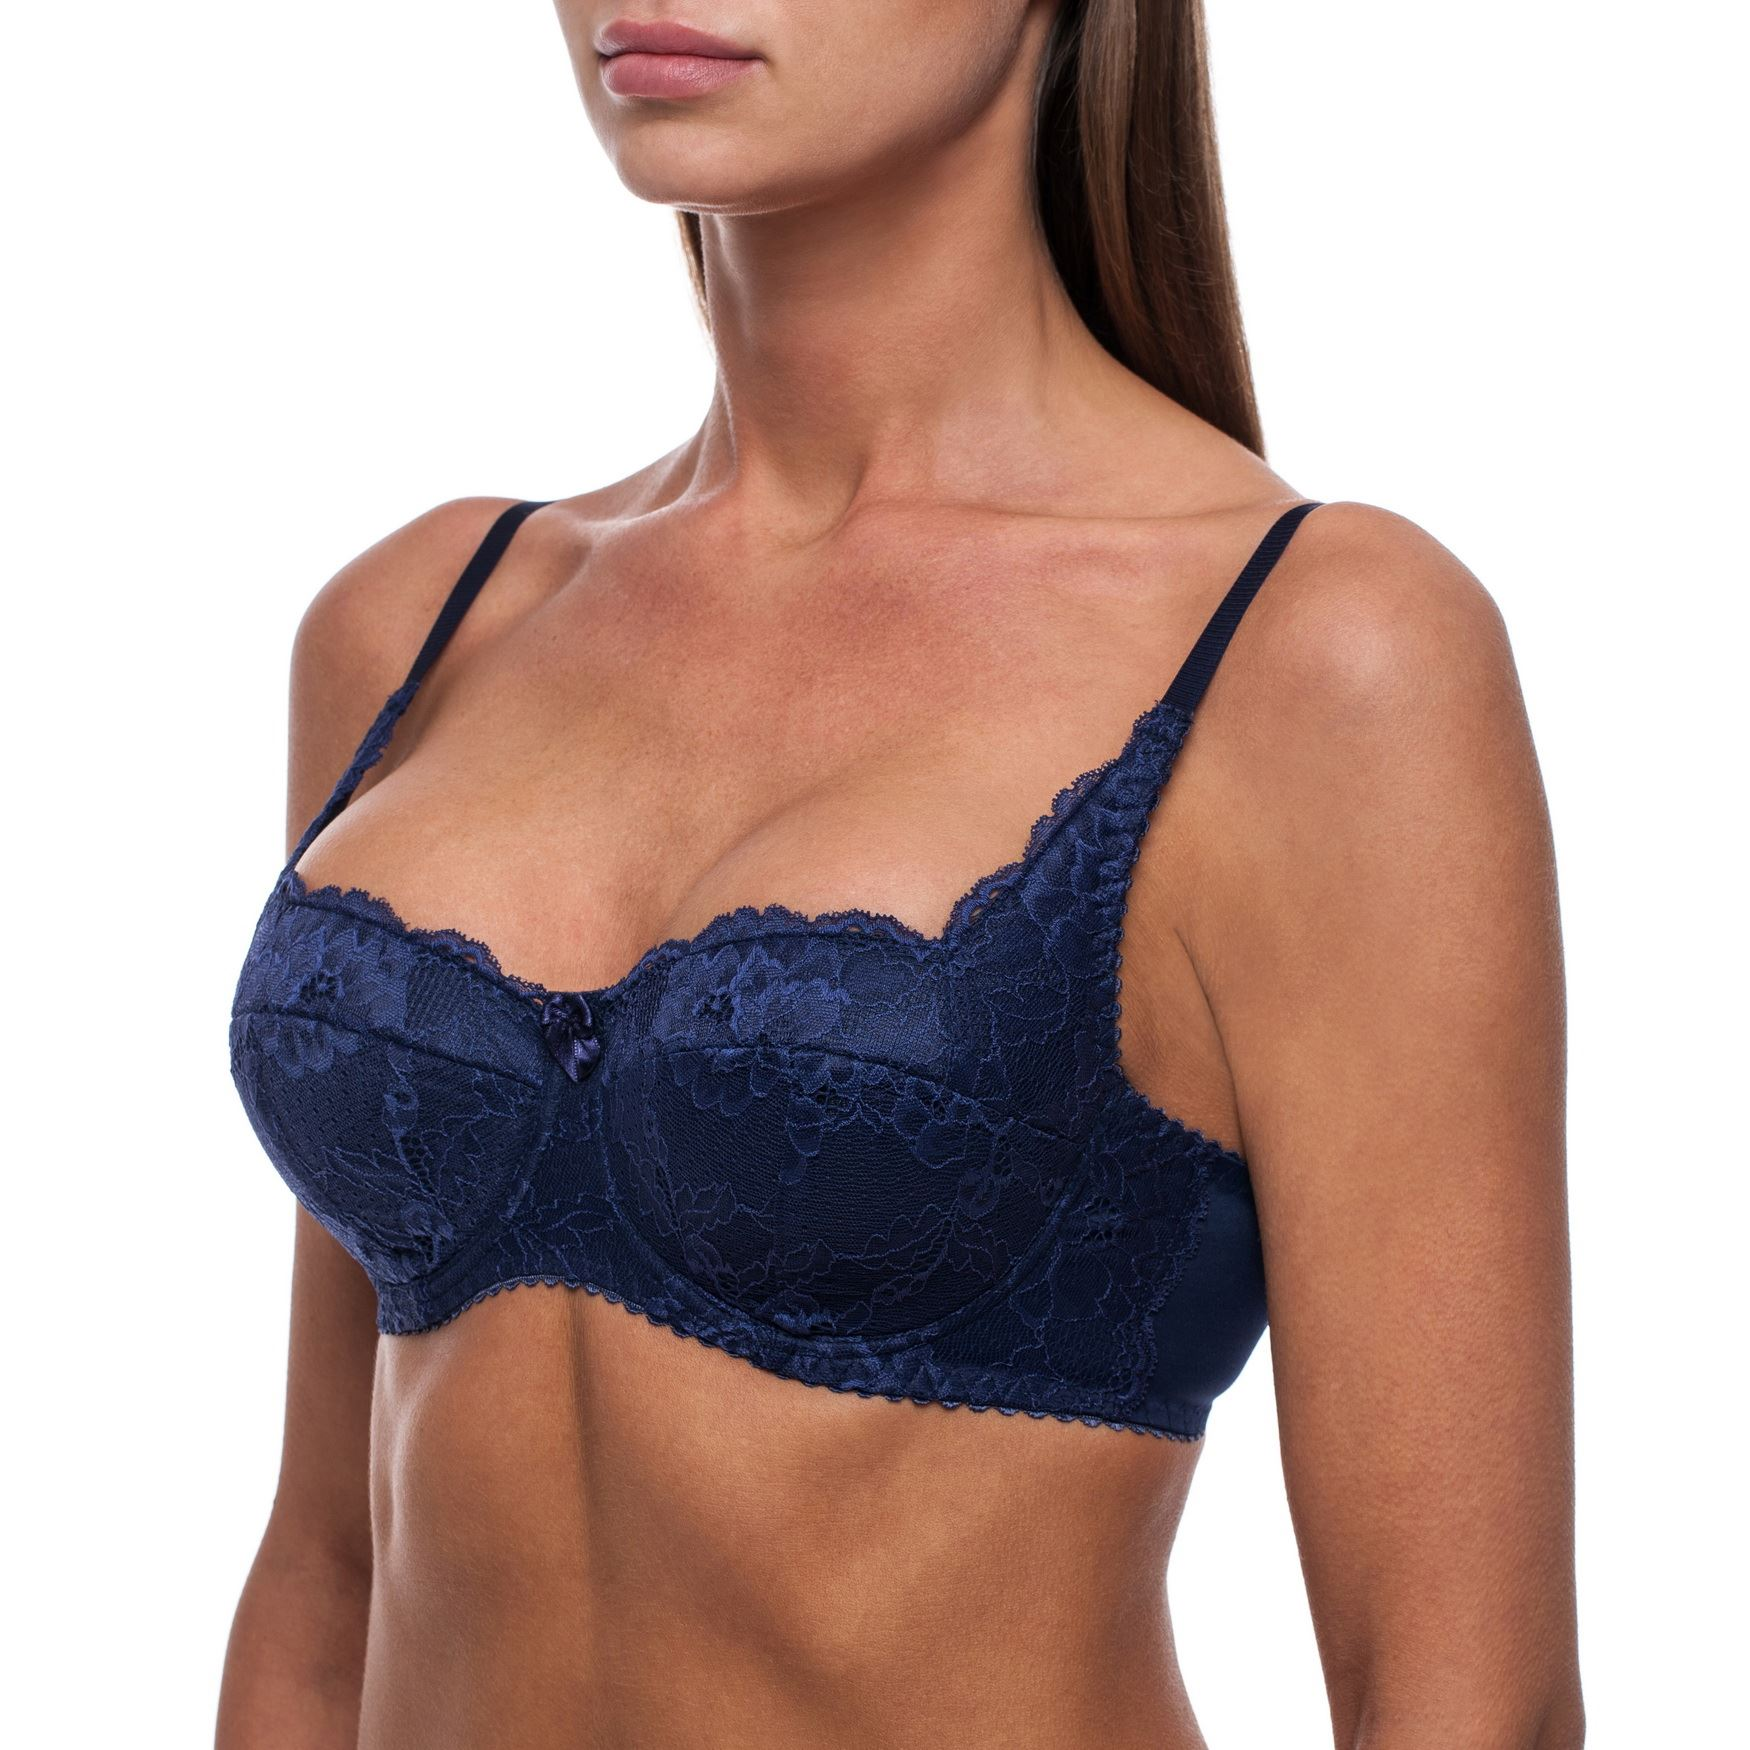 2924b803d8e96 Demi   Balconette Underwire Lightly Padded Sexy Lace Comfortable ...